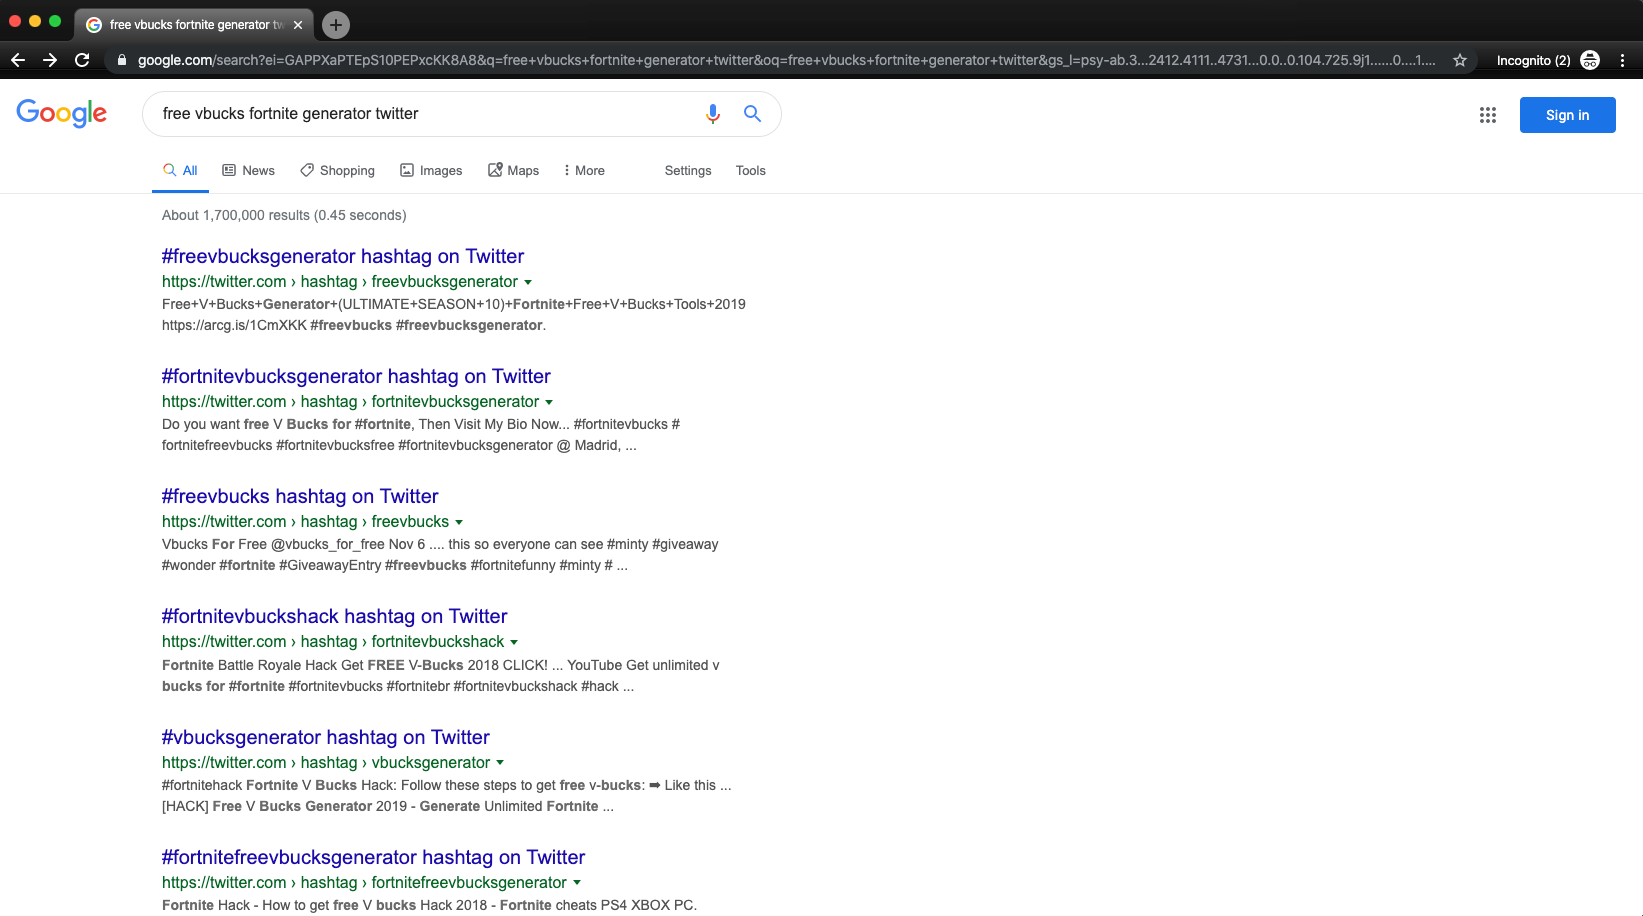 Google Search: Fortnite Scam on twitter